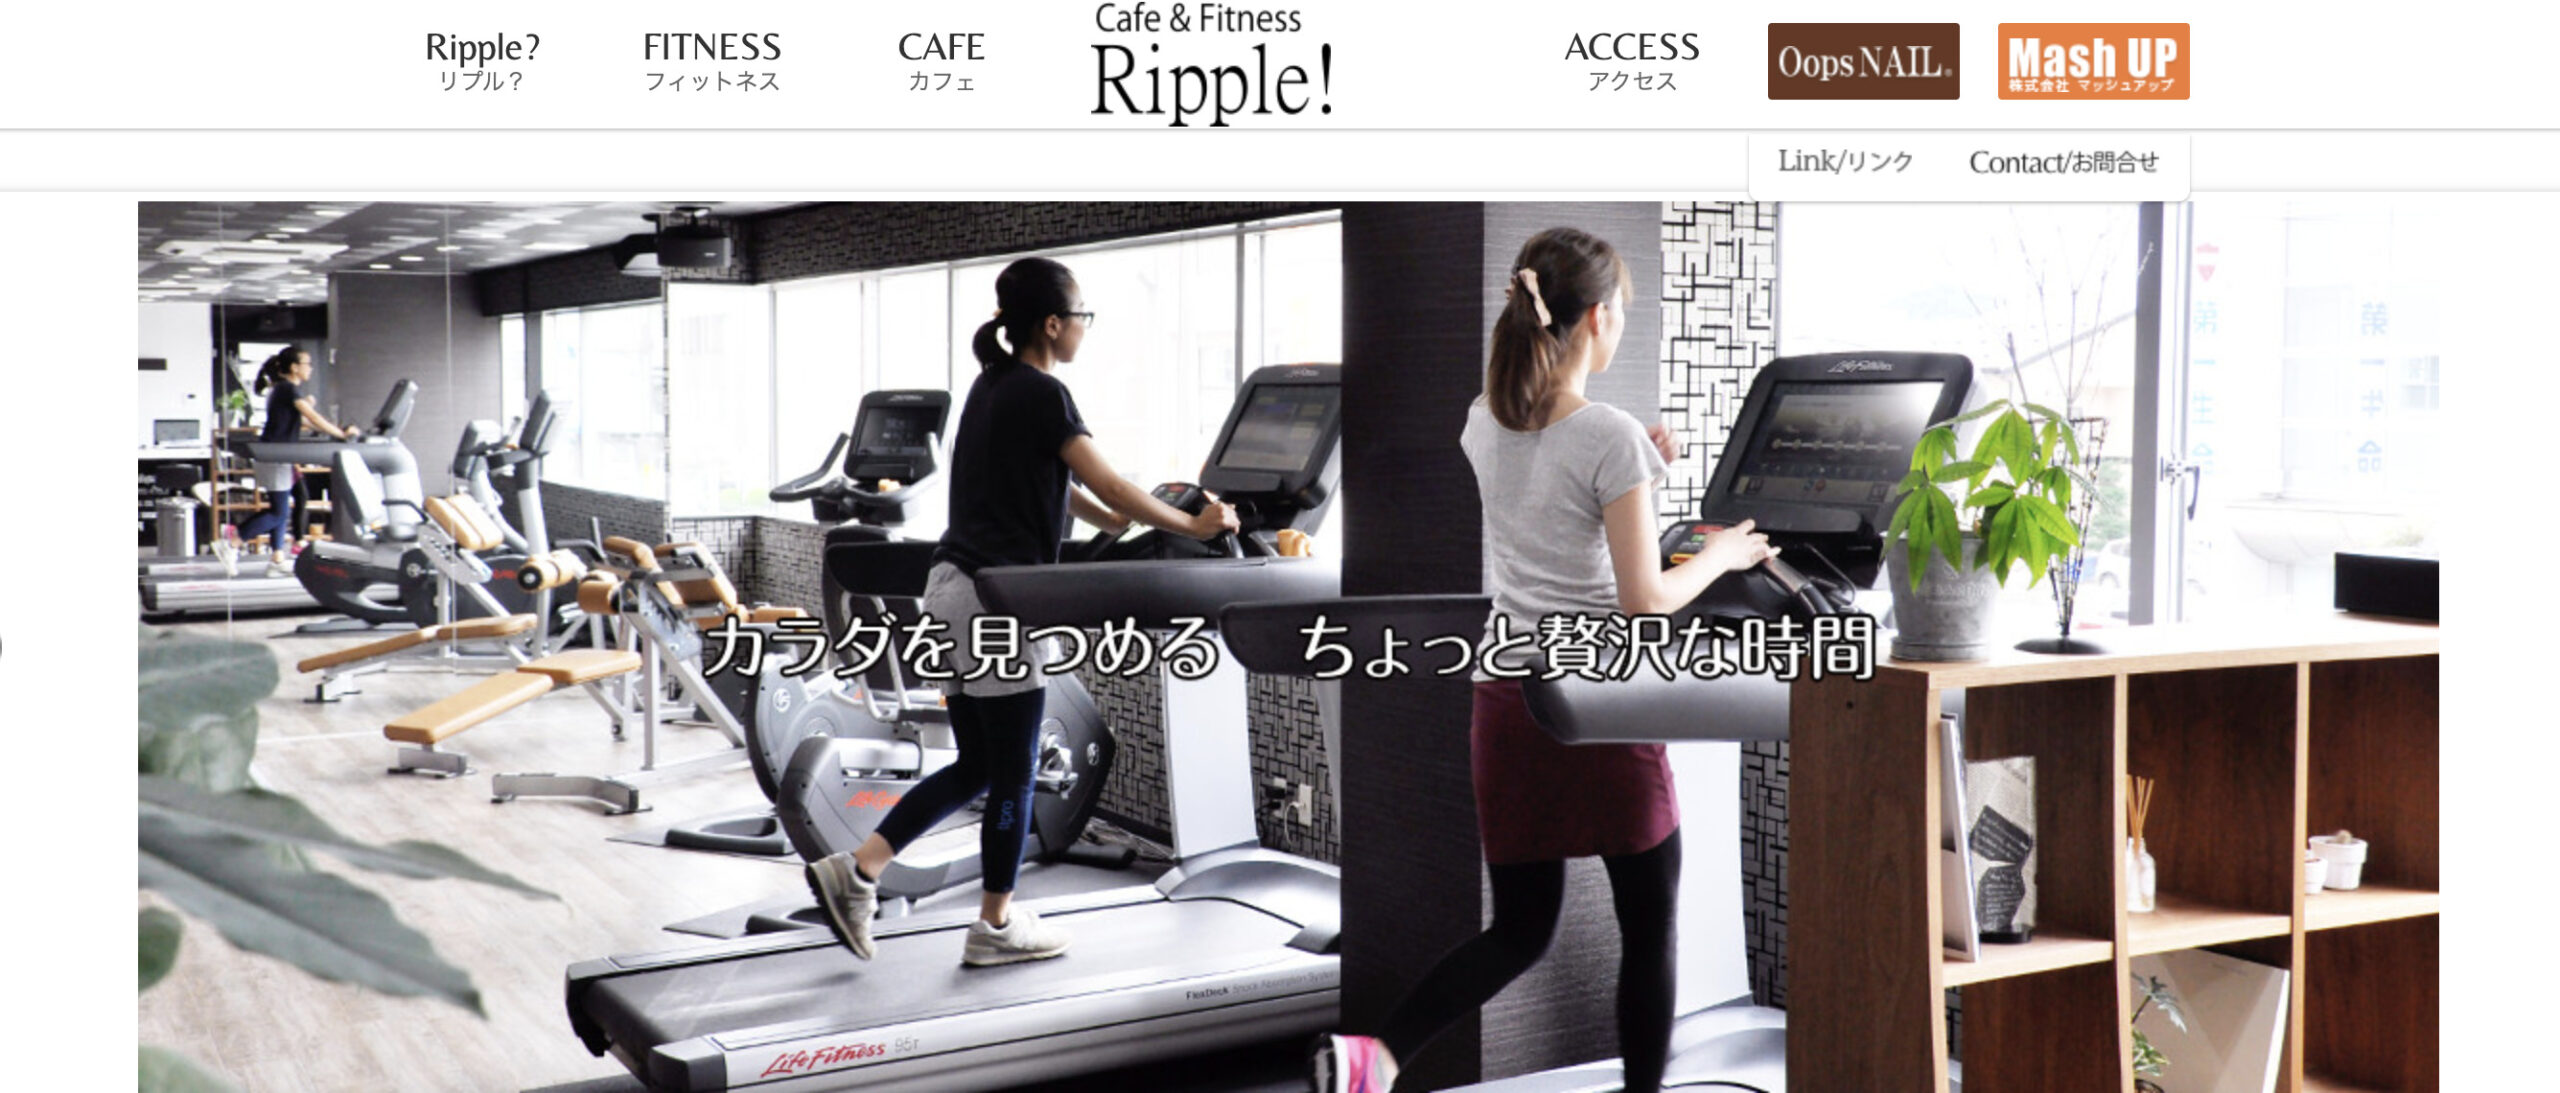 Cafe & Fitness Ripple